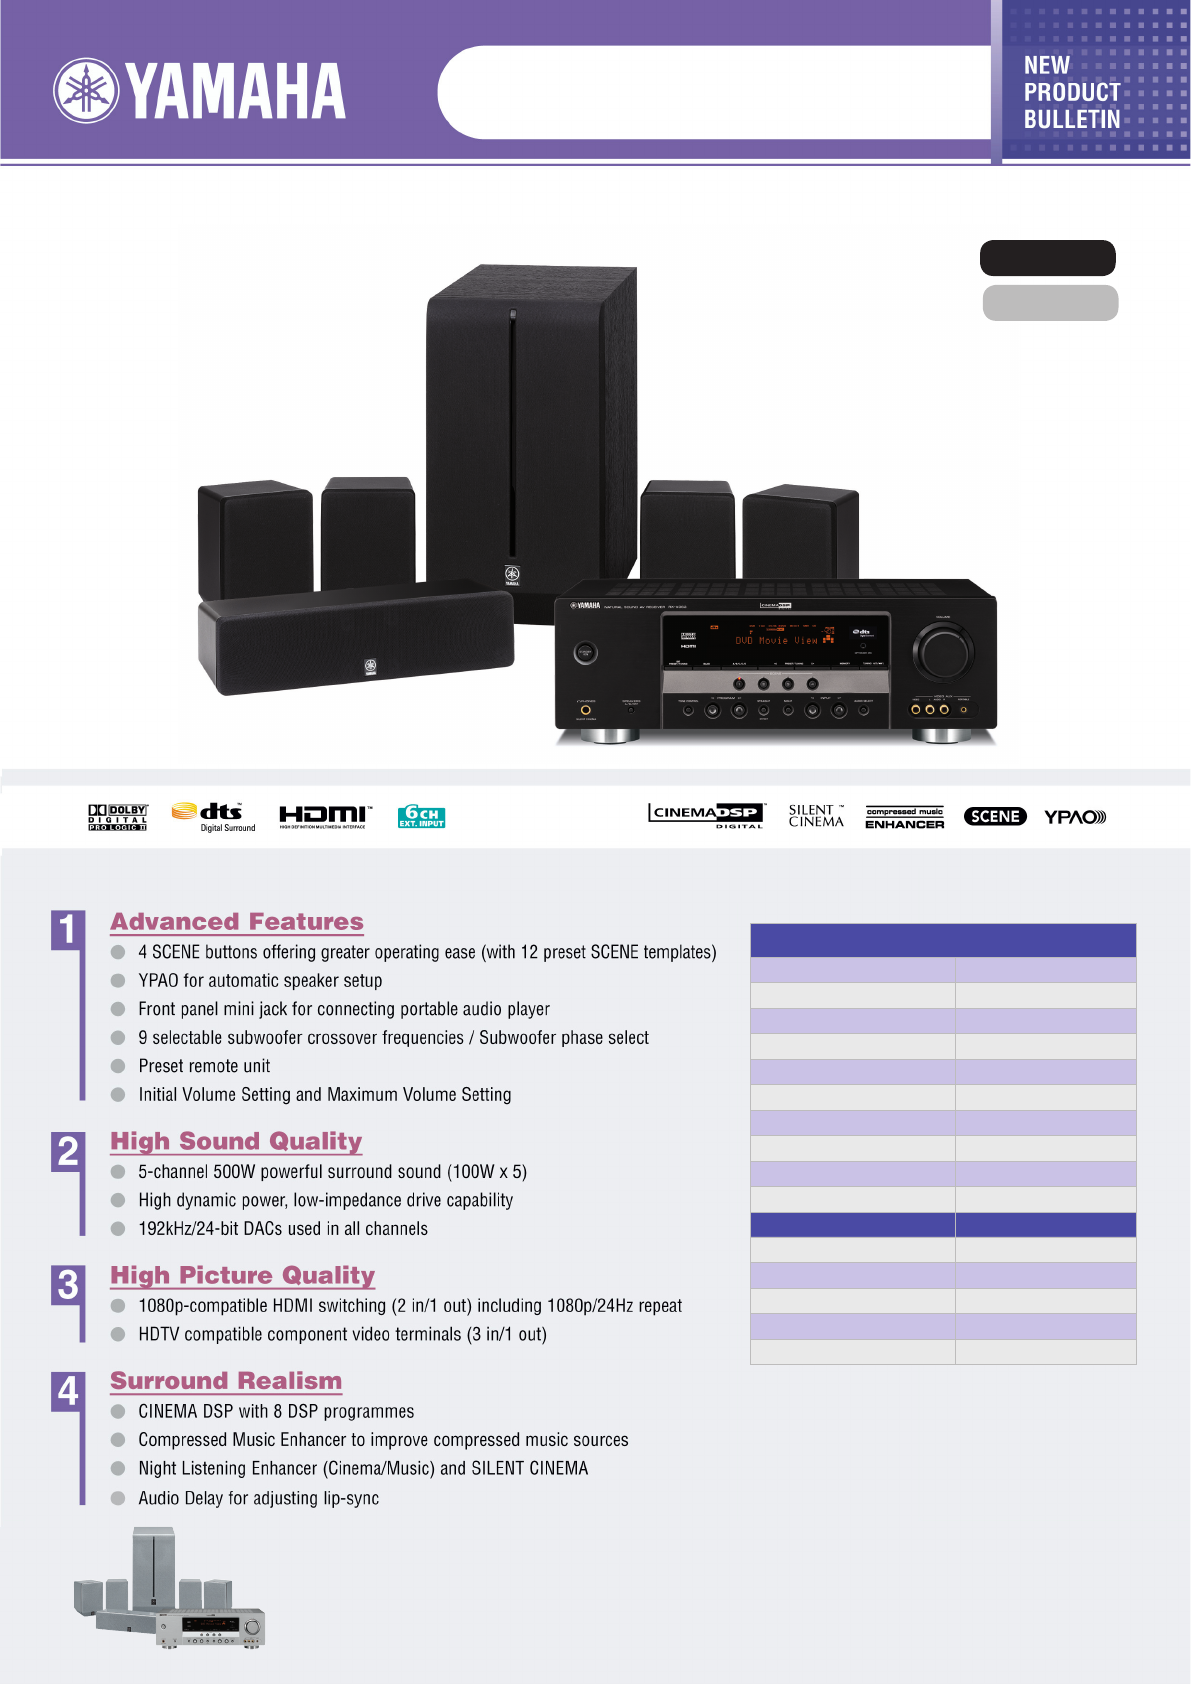 Yamaha Home Theater System Wiring Diagram - Wiring on sony home theater wiring diagram, home theater tv wiring diagram, home theater subwoofer wiring diagram,